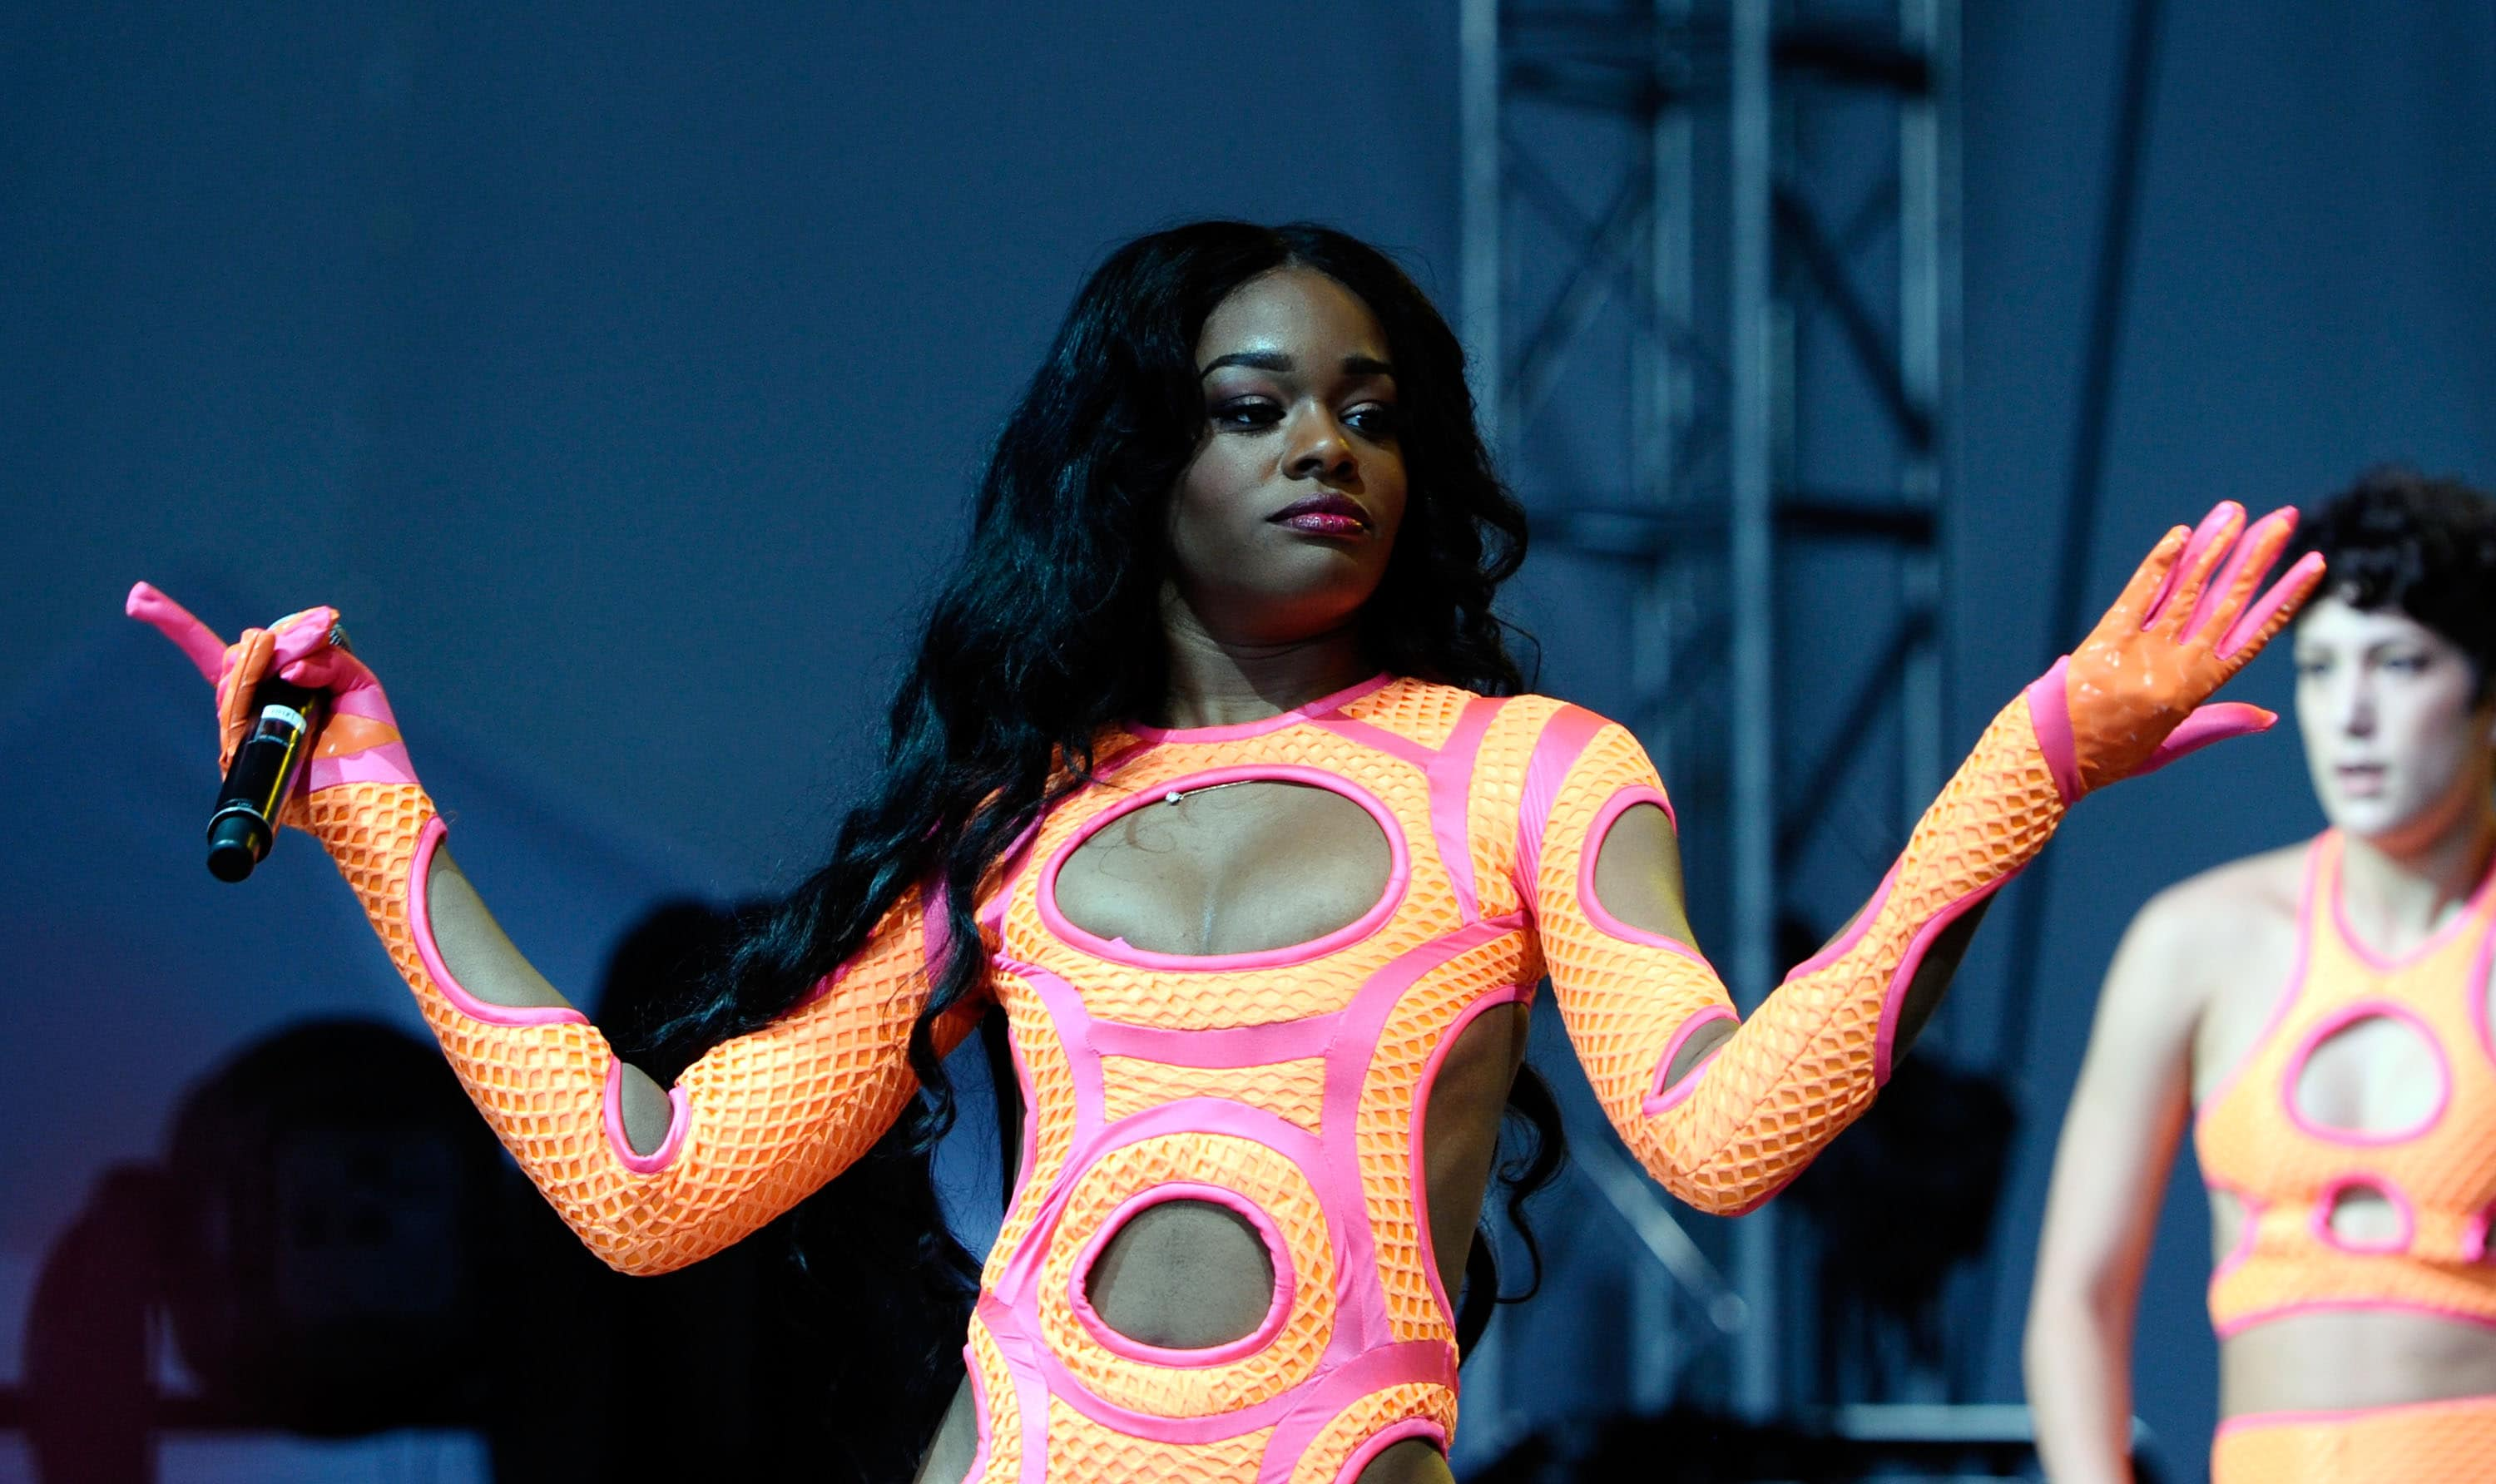 Azealia Banks accused Russell Crowe of choking her, spitting on her, and calling her a racial slur (Getty Images)